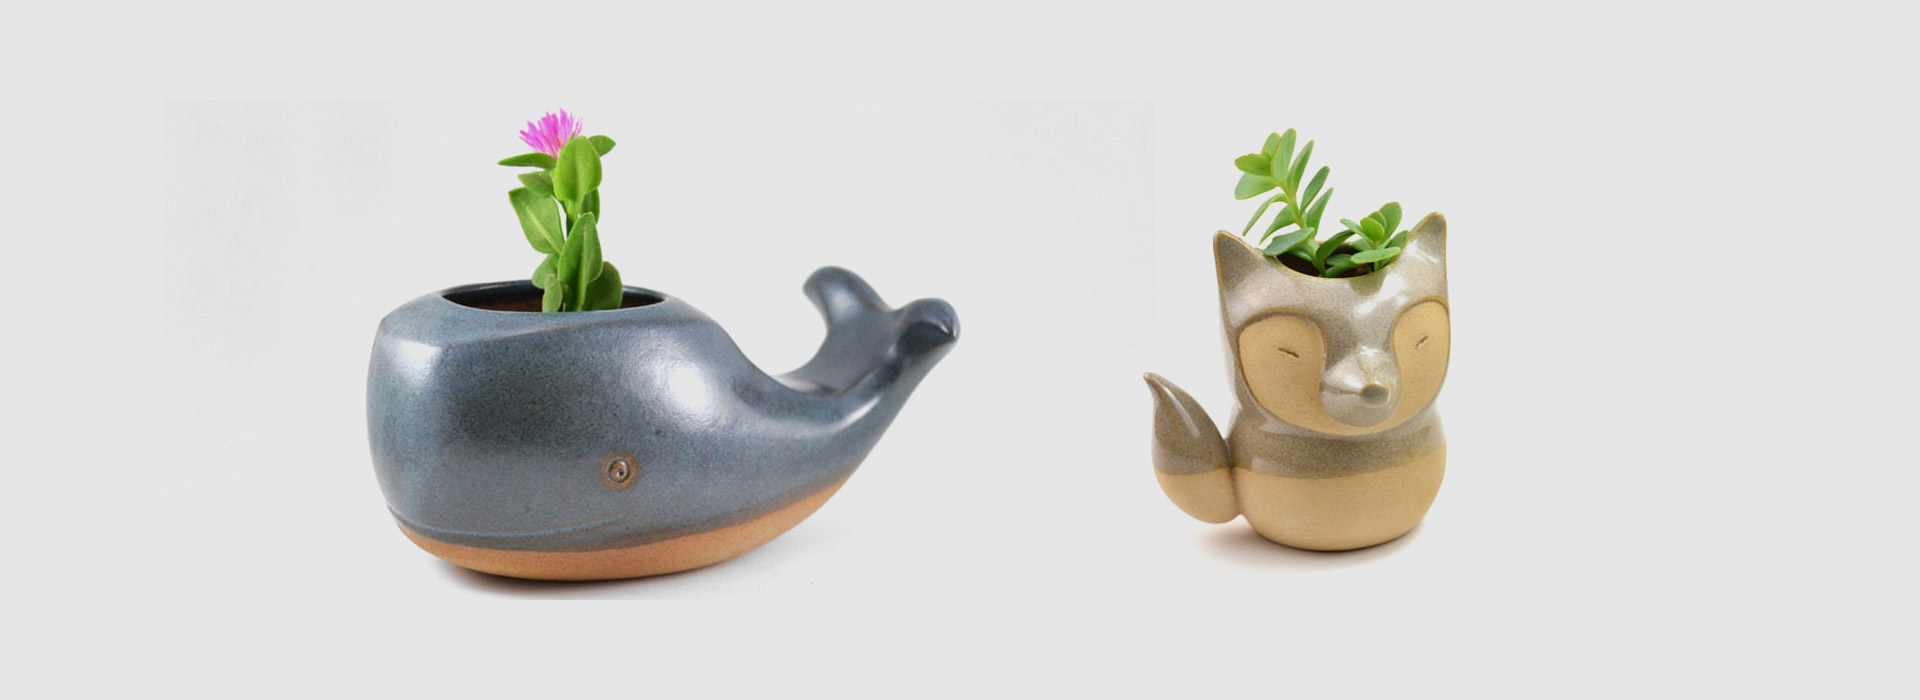 pots_animaux_plantes_home